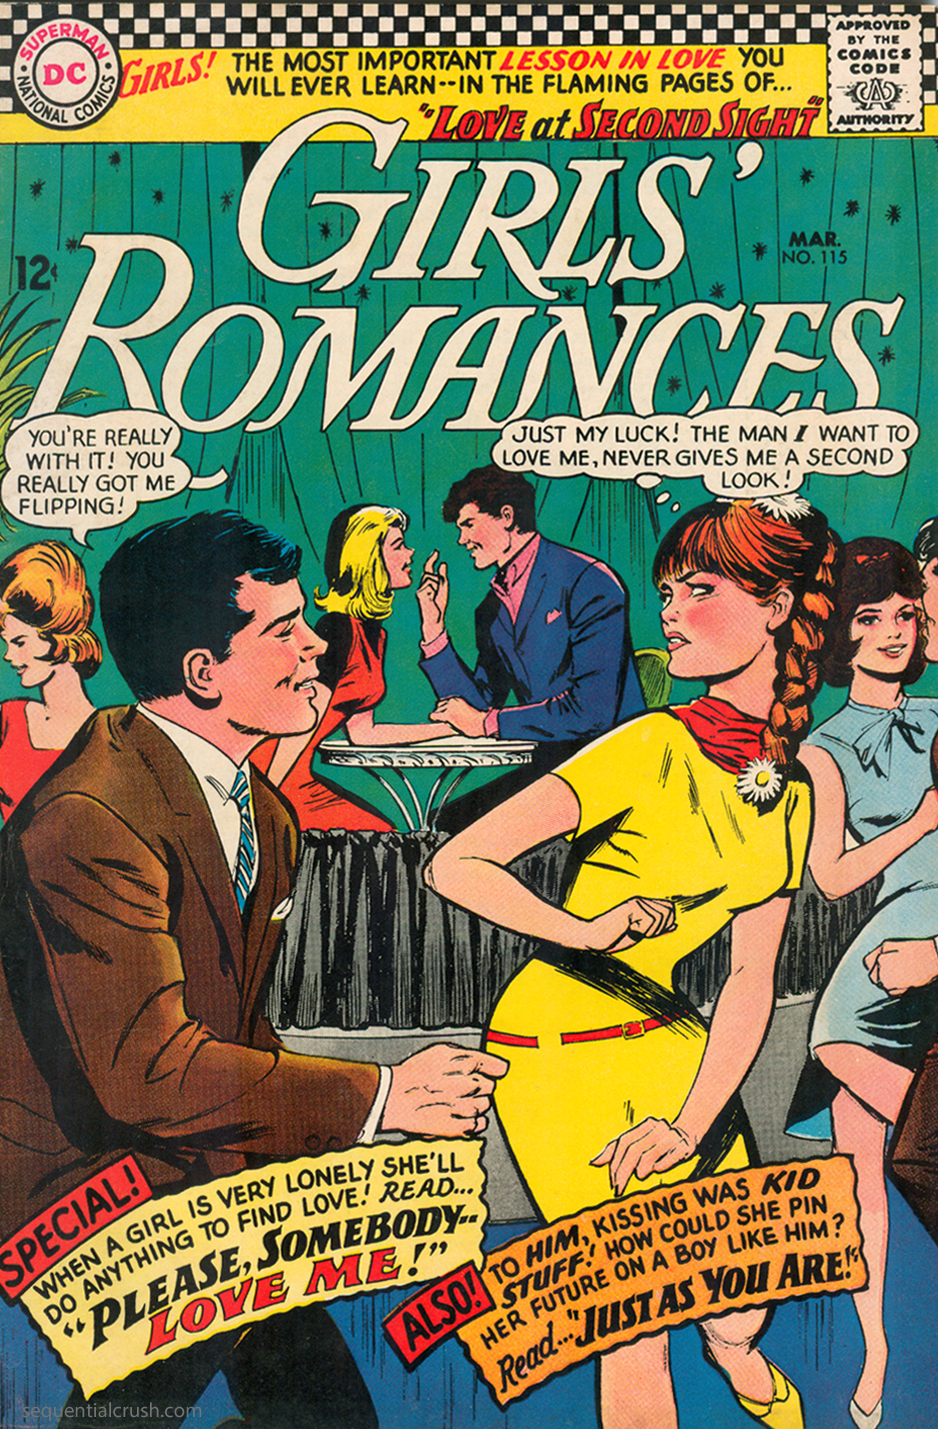 Girls' Romances #115 (March 1966) Pencils and Inks: Win Mortimer